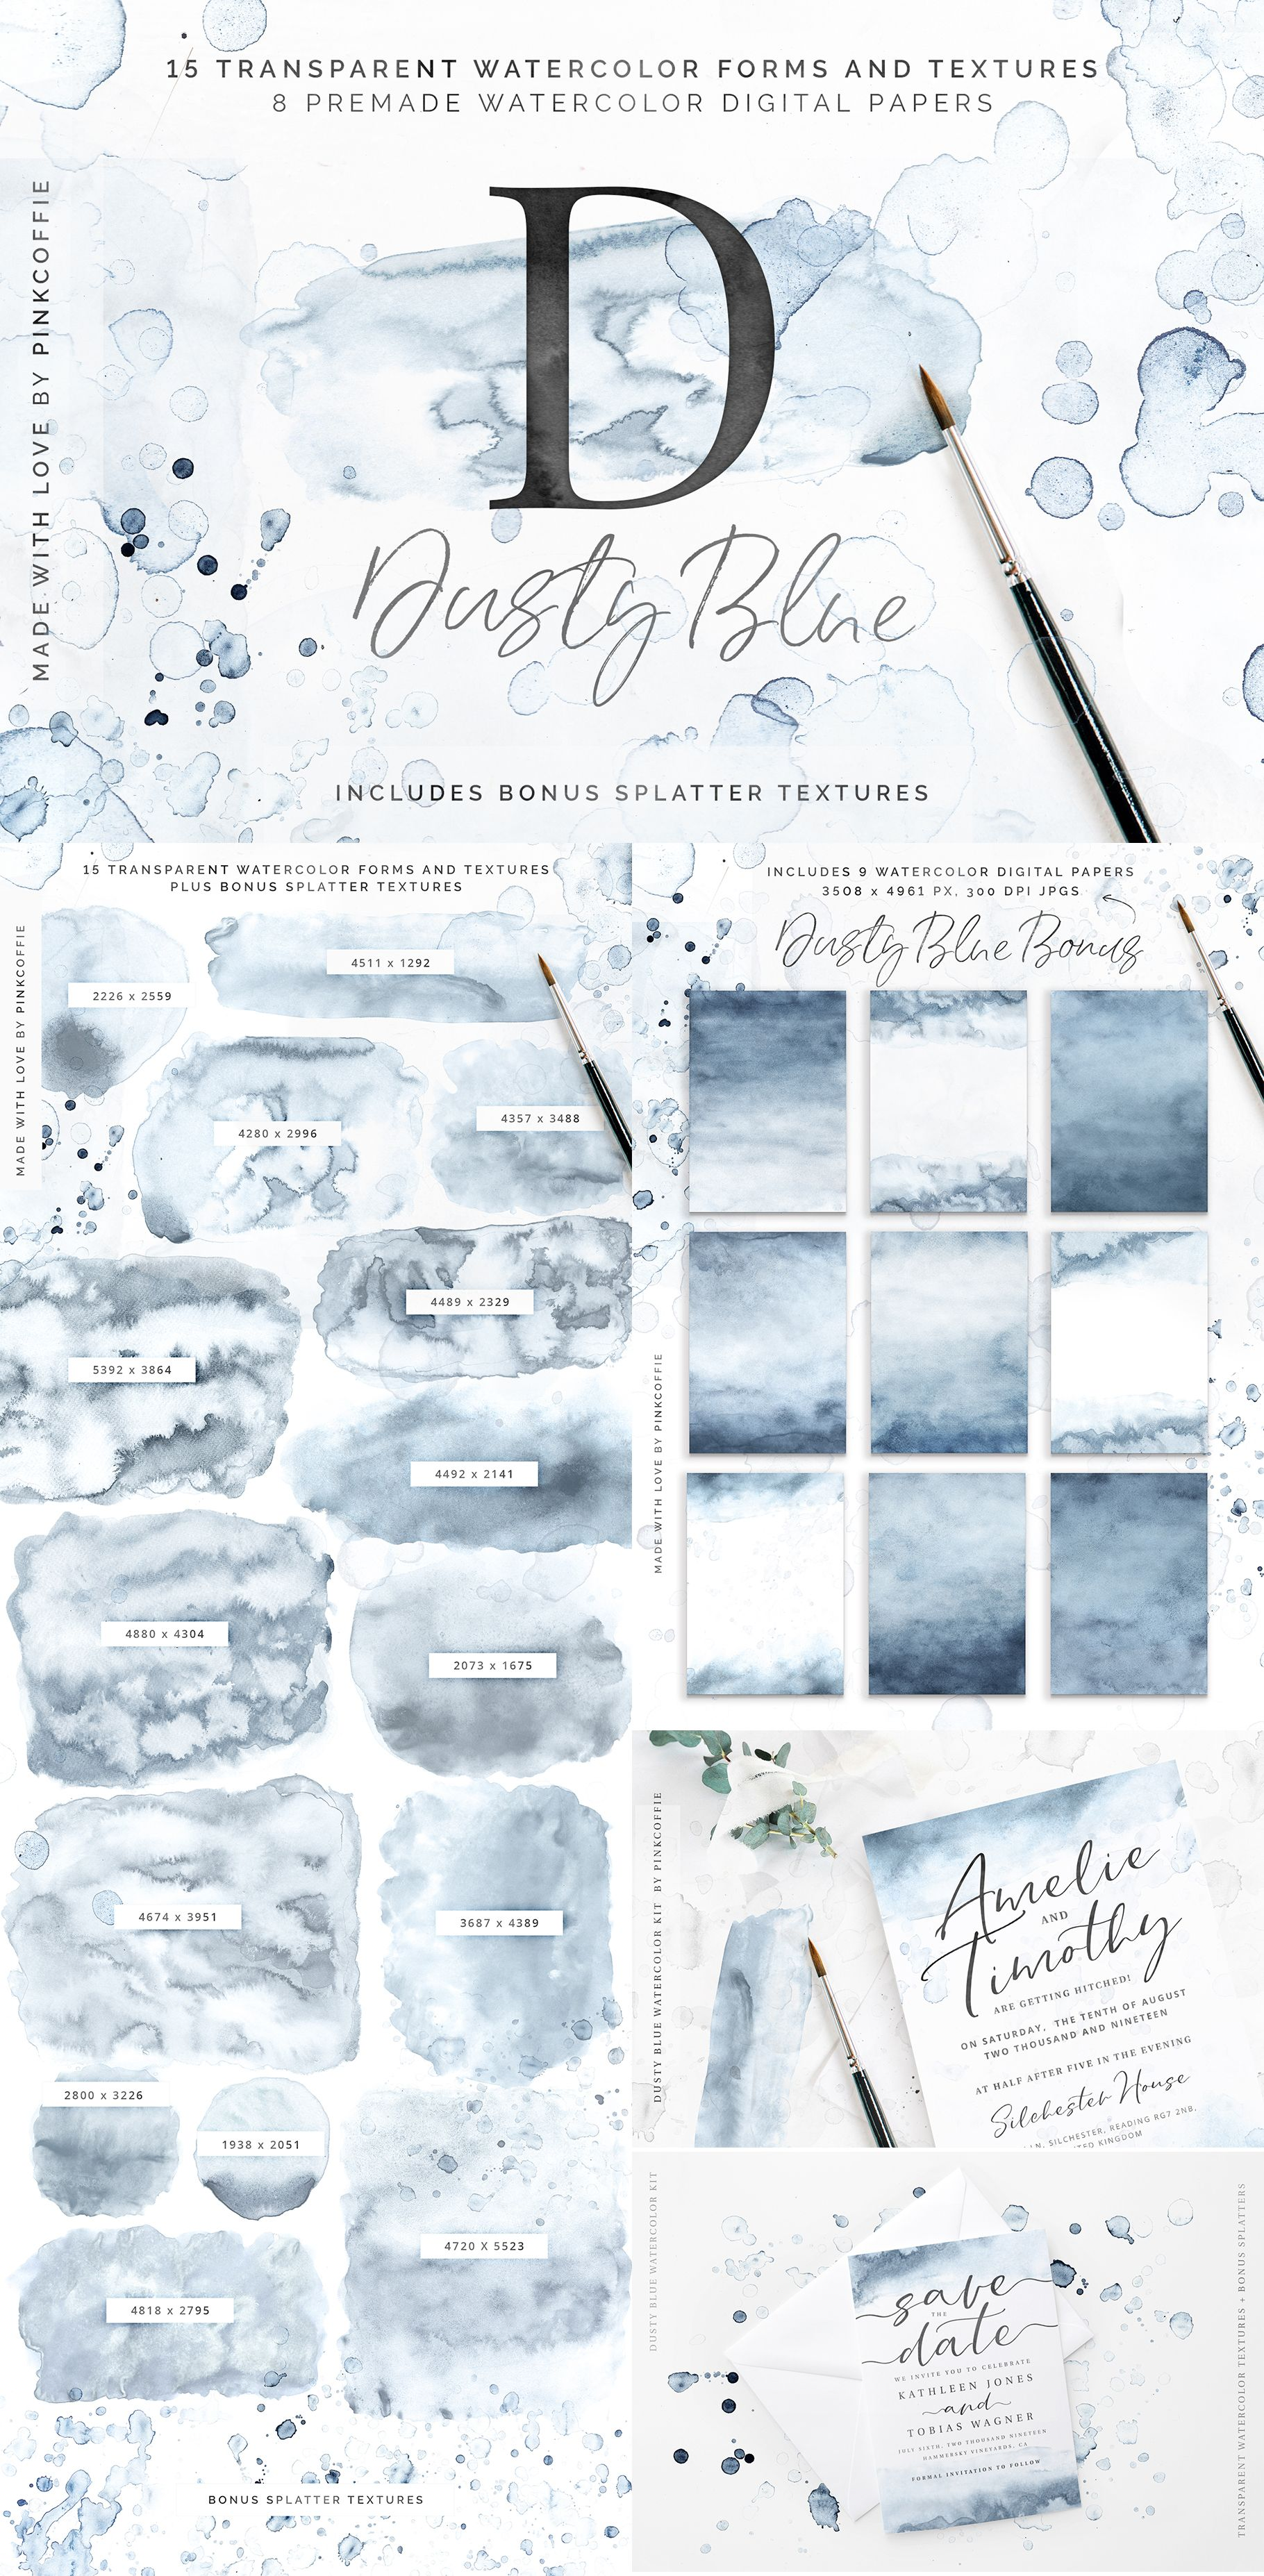 Dusty Blue Watercolor Textures Kit Watercolor Kit Watercolor